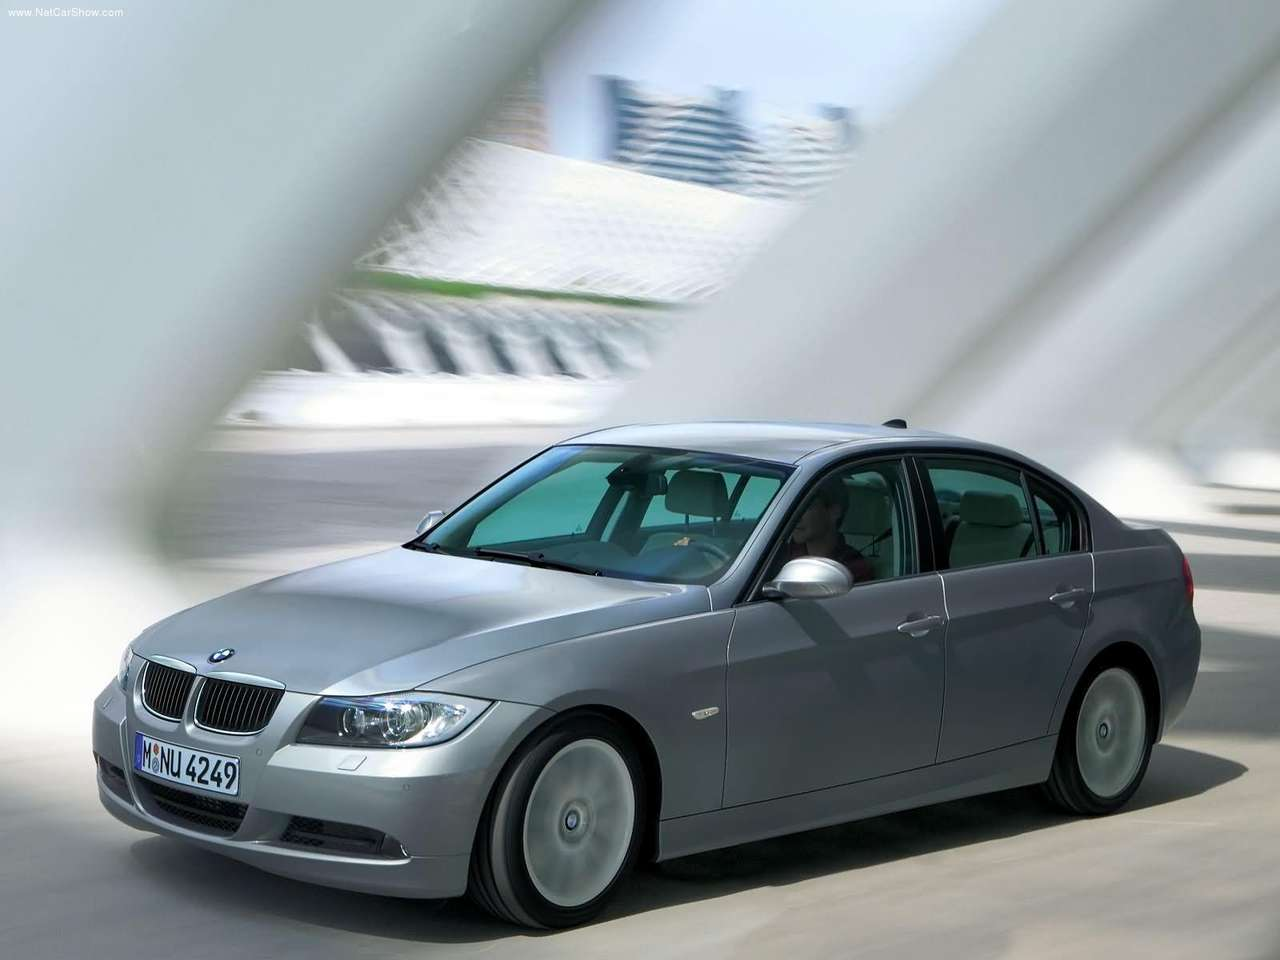 performance of cars: 2006 BMW 320d